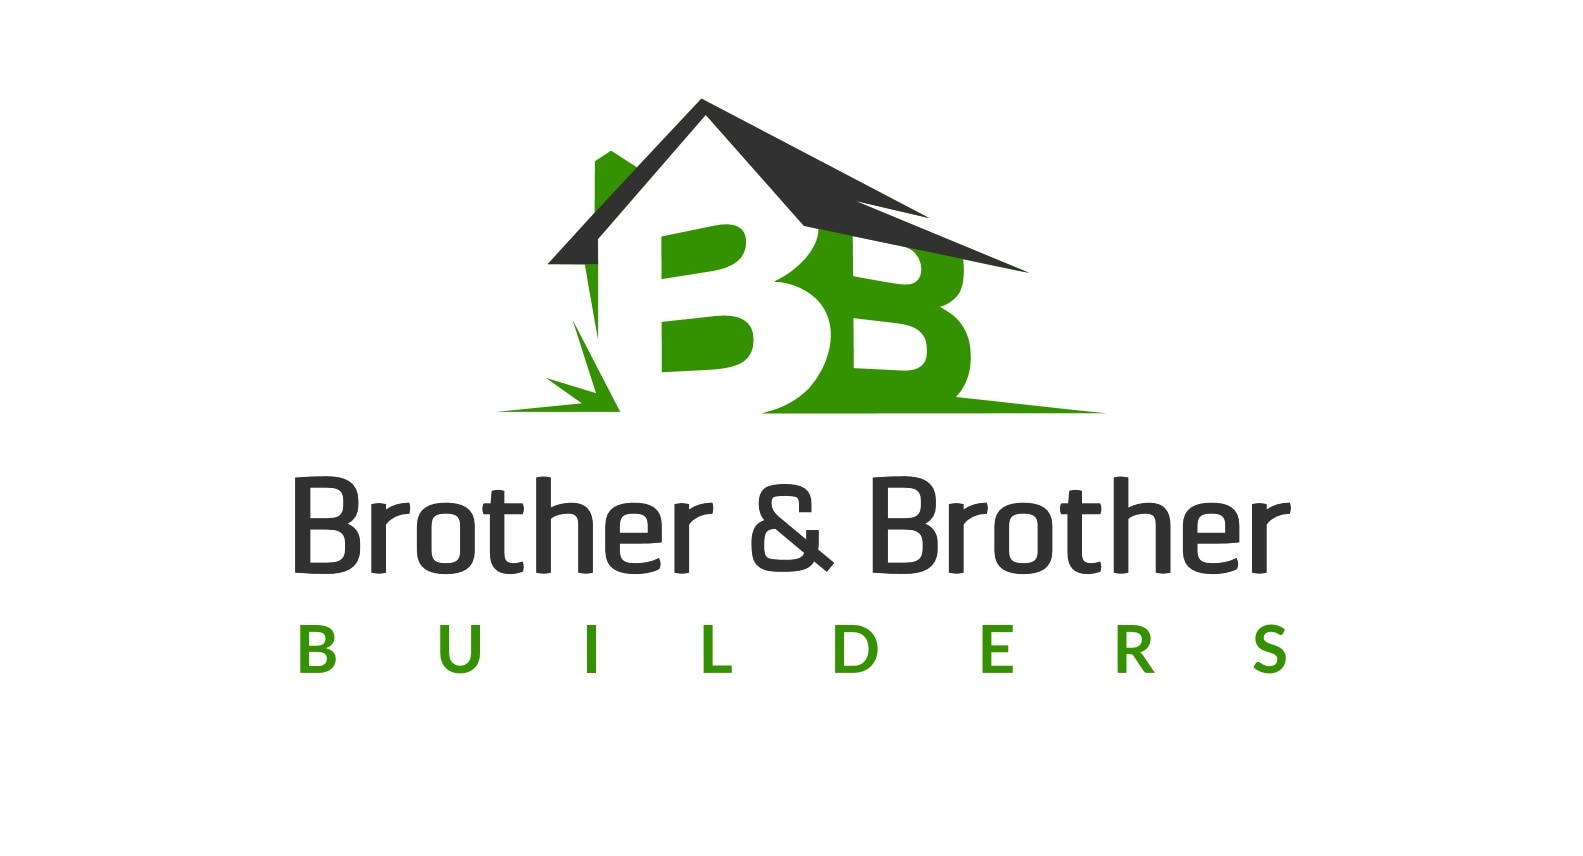 Brother & Brother Builders logo